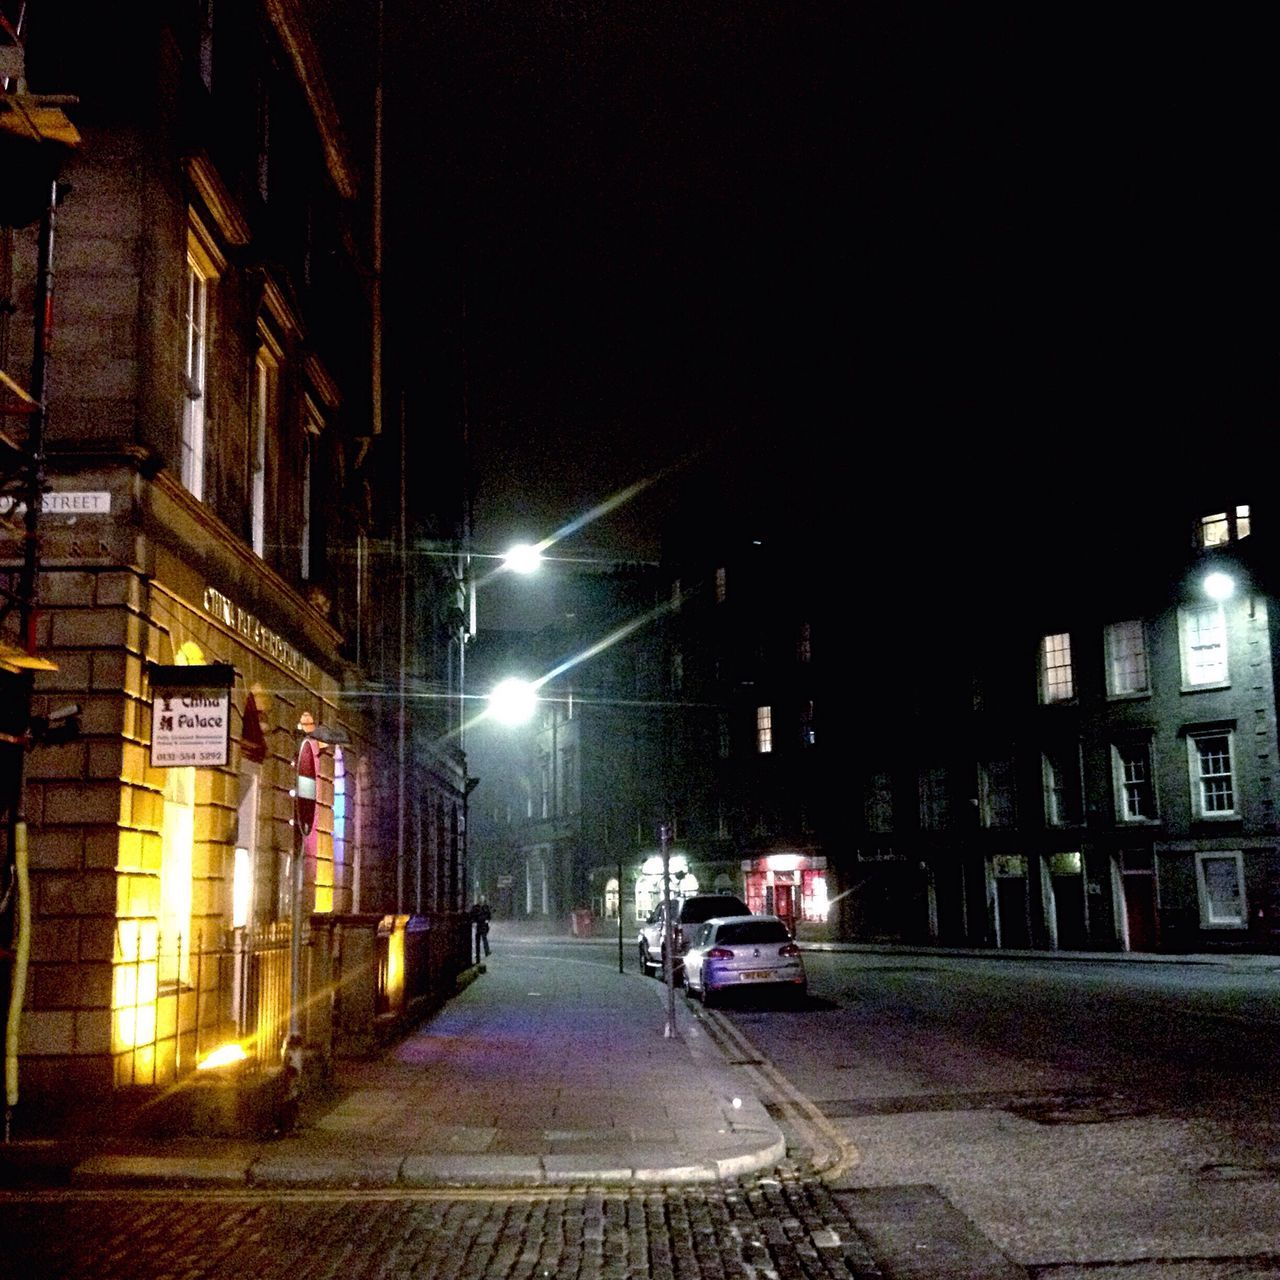 Empty street and lights Taking Photos City Streetphotography Light Lights In The Dark Night Owl Darkness And Light Edinburgh Scotland Uk At Night First Eyeem Photo